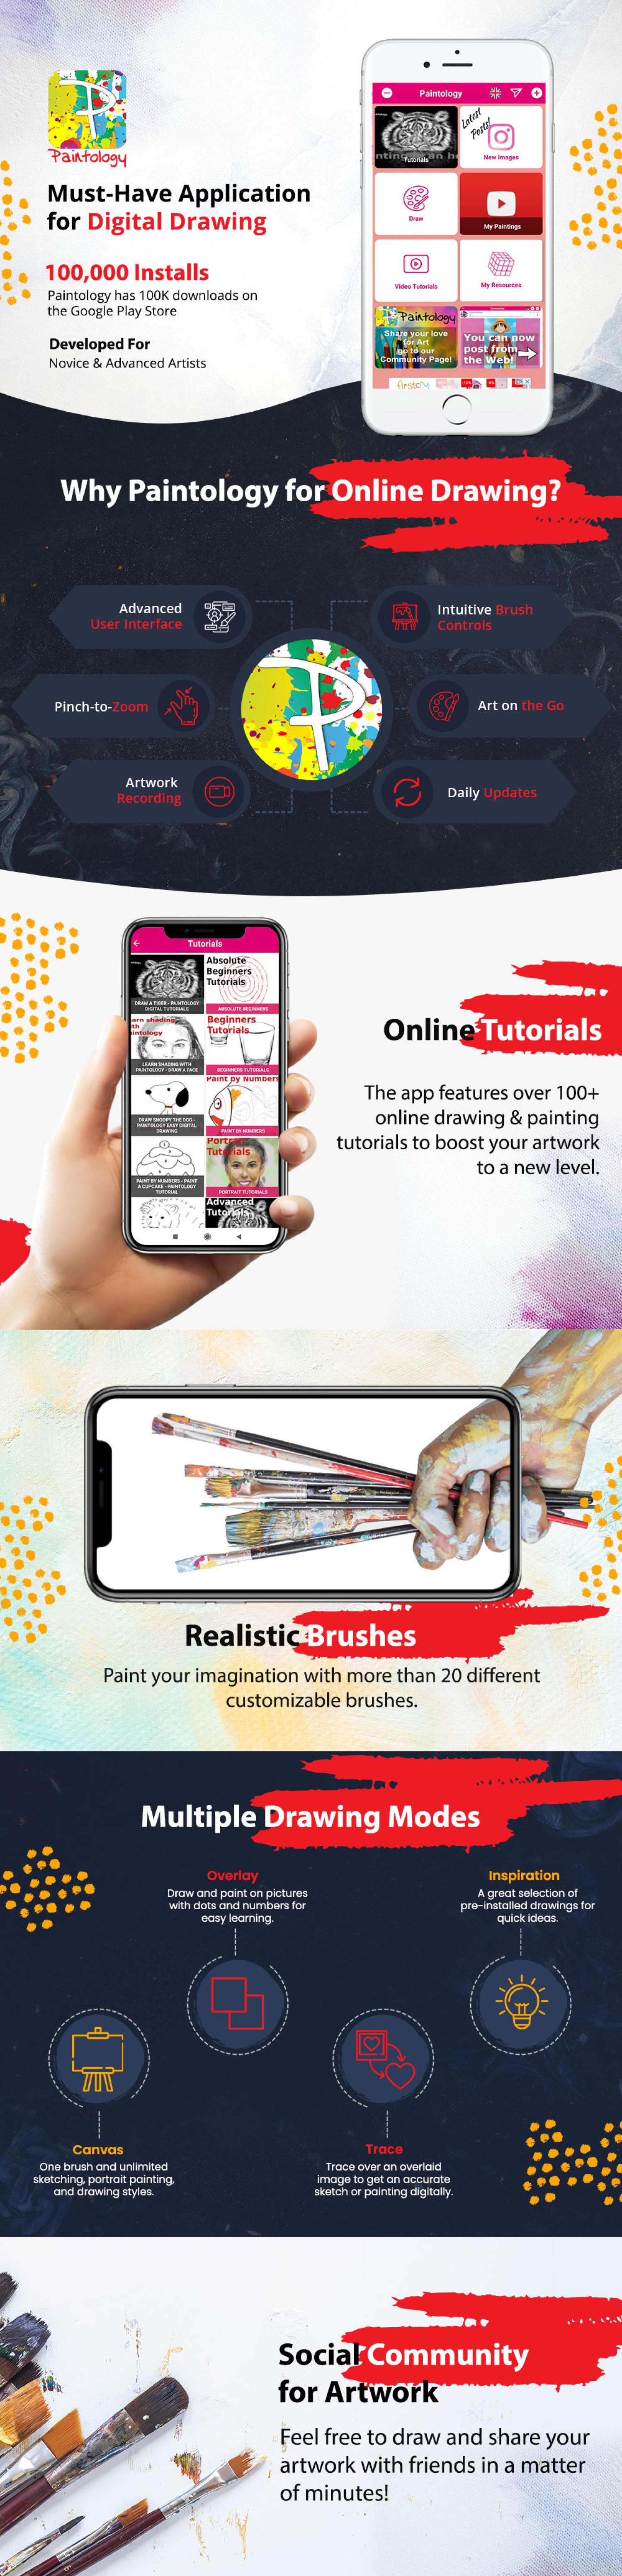 Why Paintology App for Digital Drawing ? Infographic